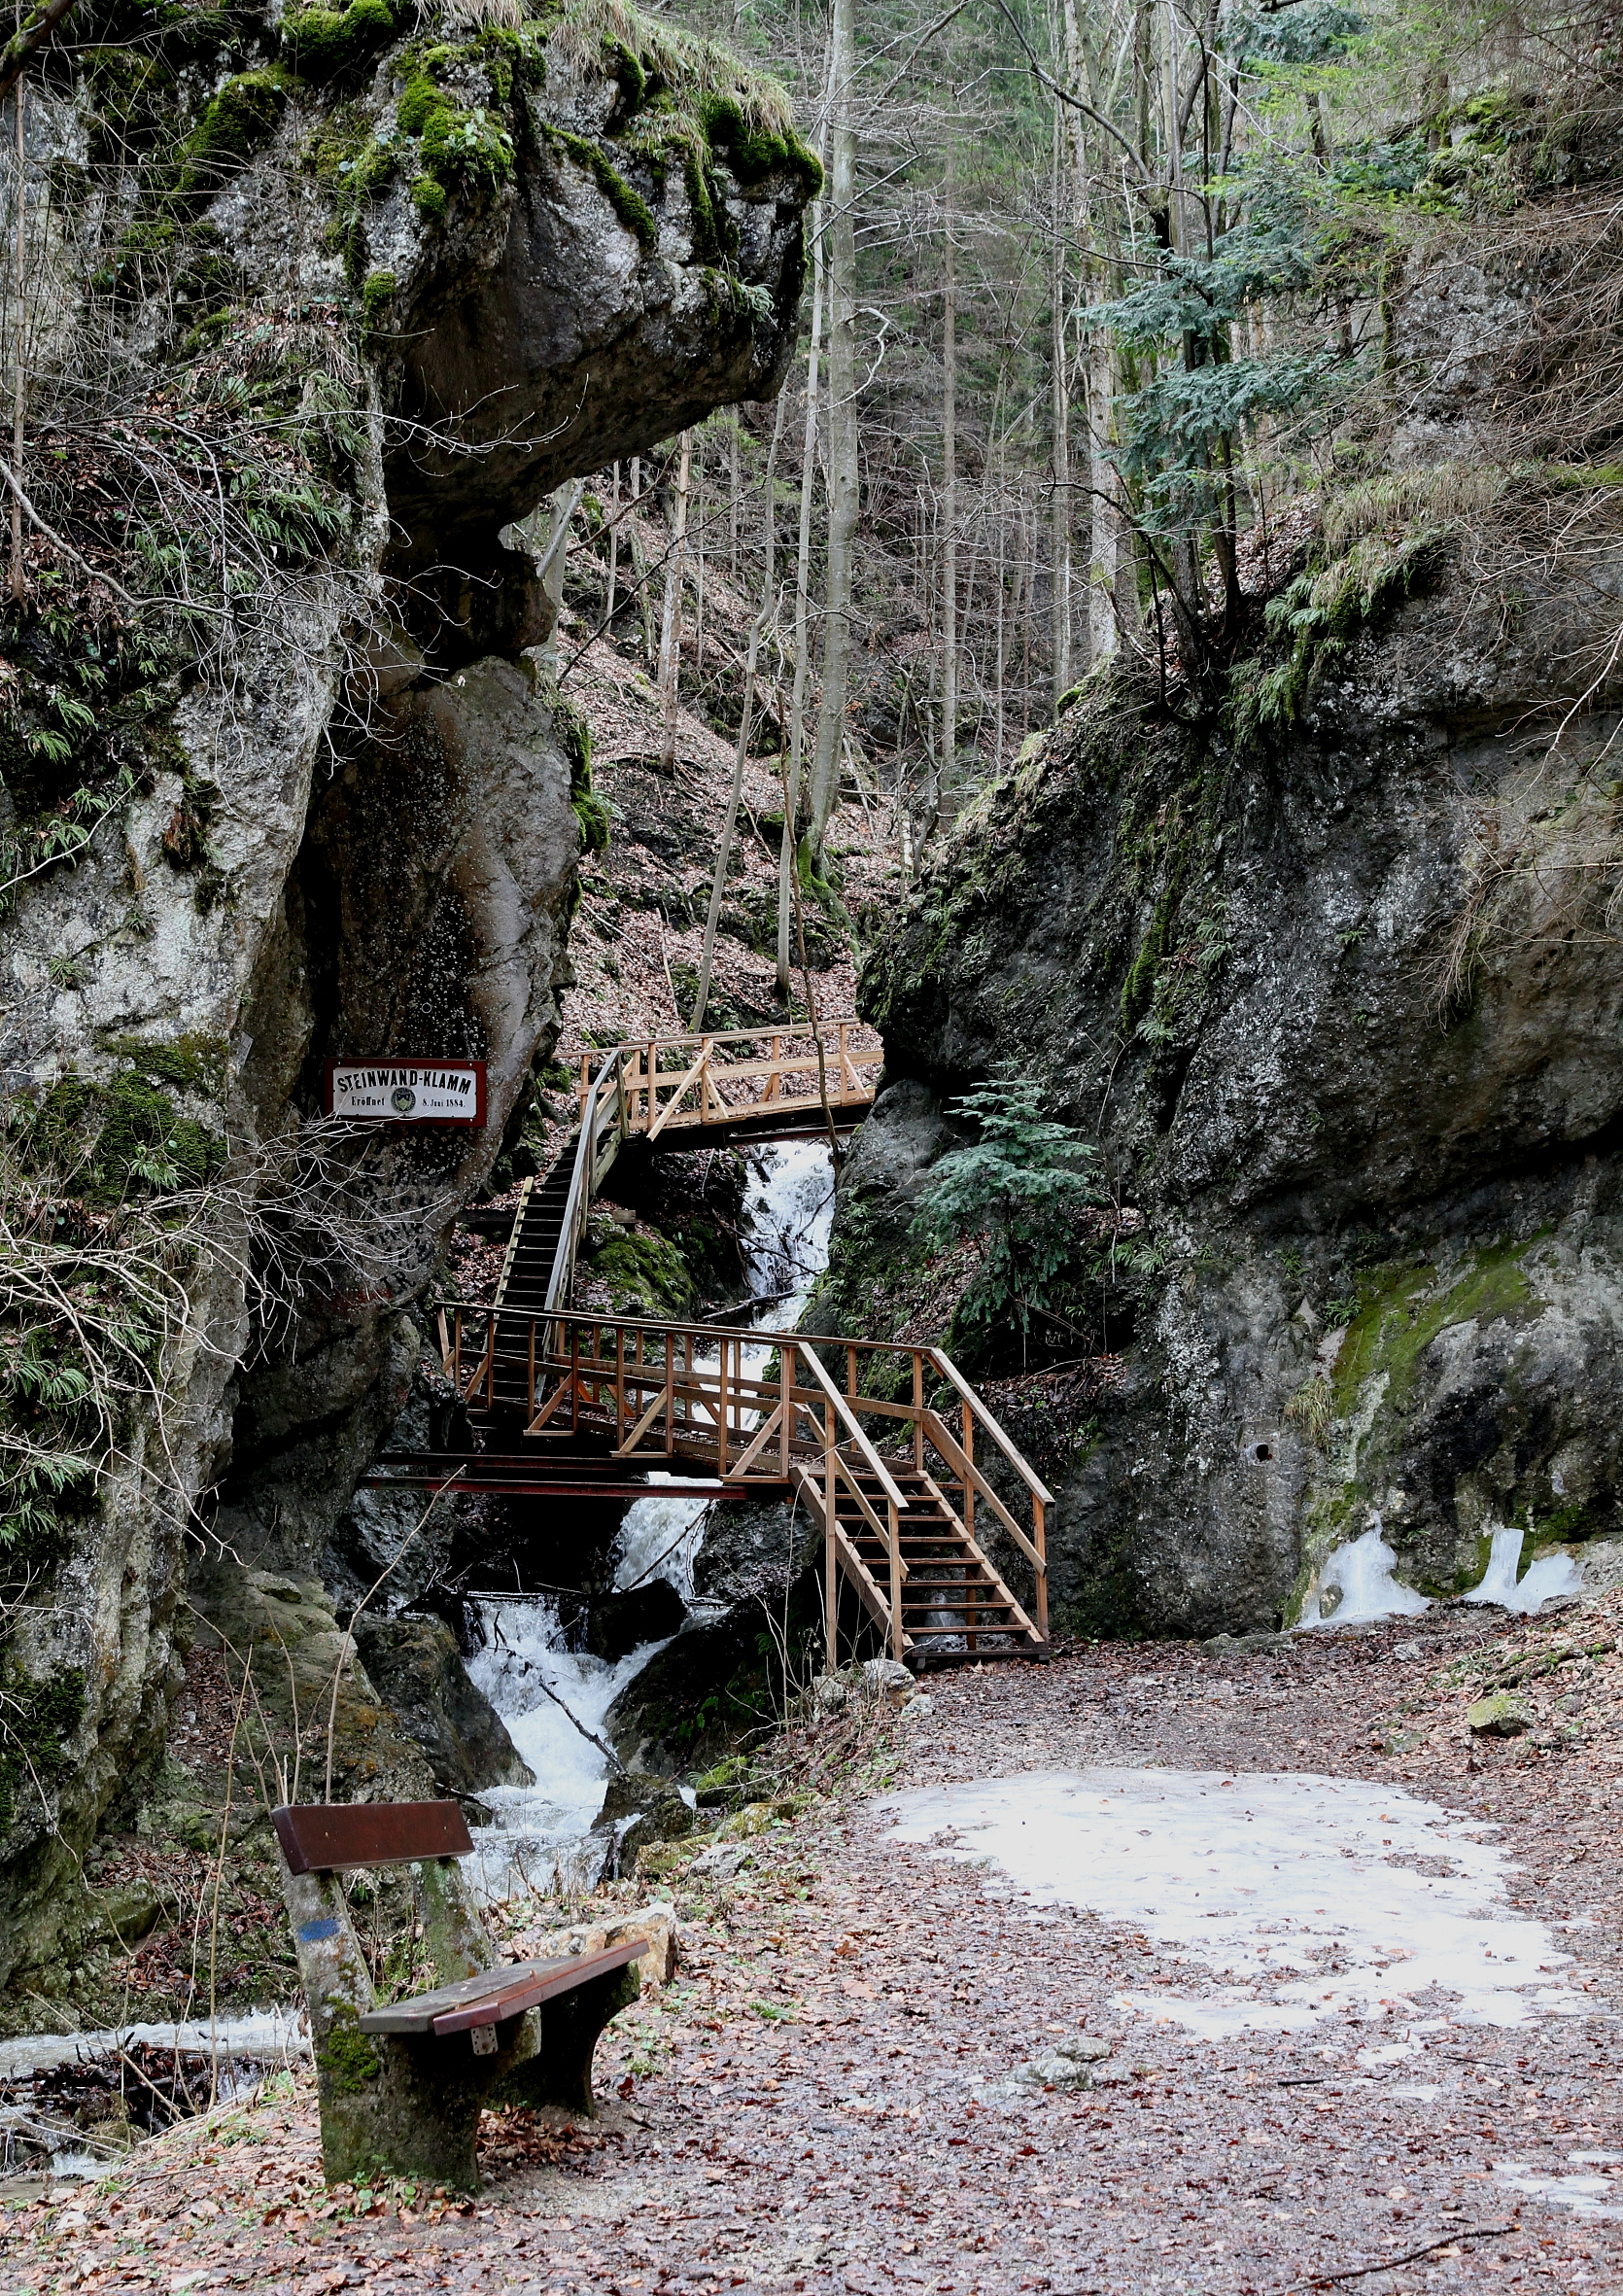 Filefurth Adt Steinwandklamm Eingangjpg Wikimedia Commons